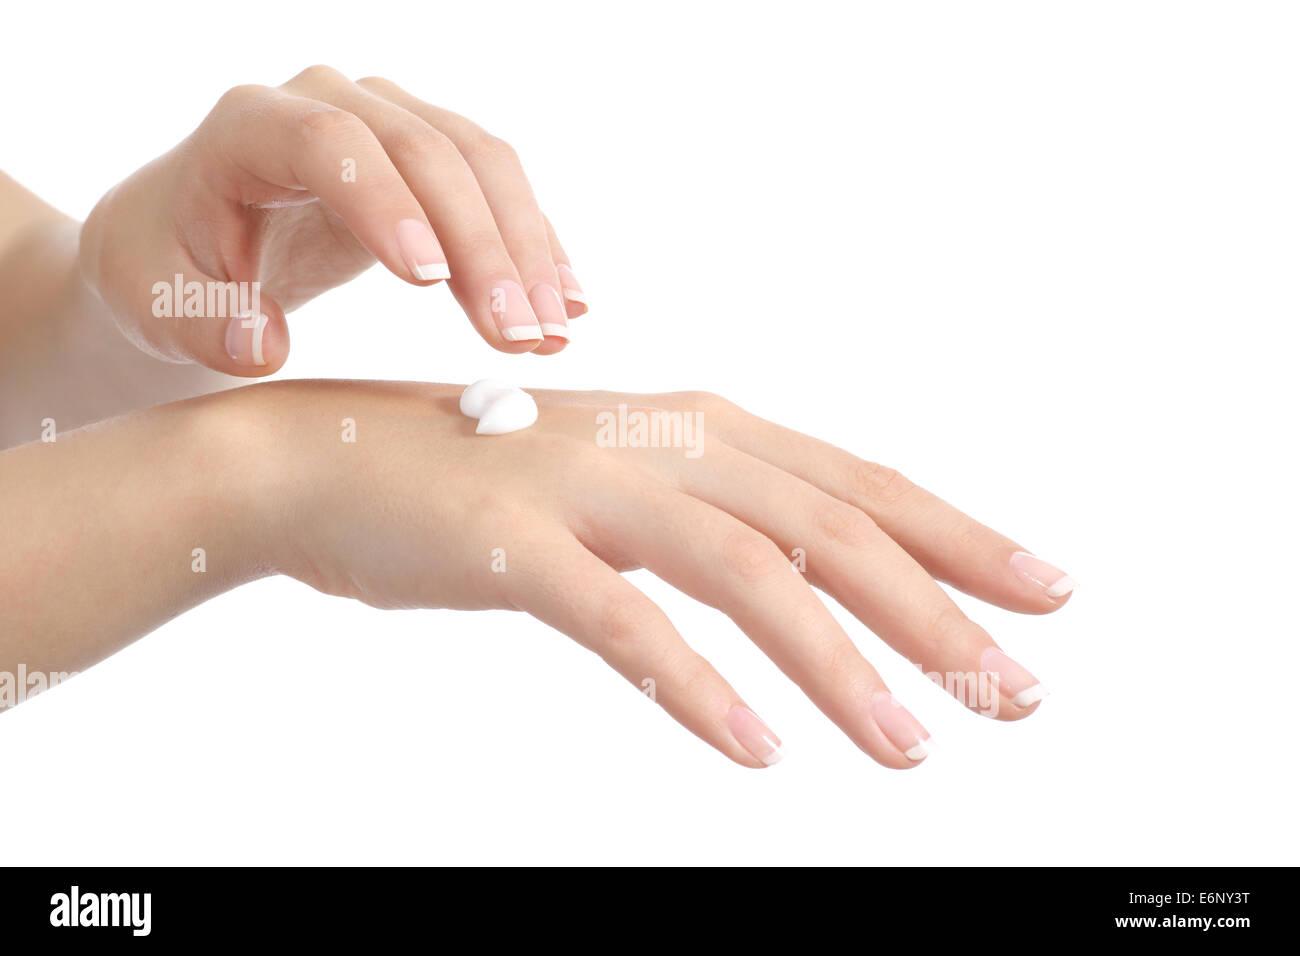 Woman hands with perfect manicure applying moisturizer cream isolated on a white background - Stock Image